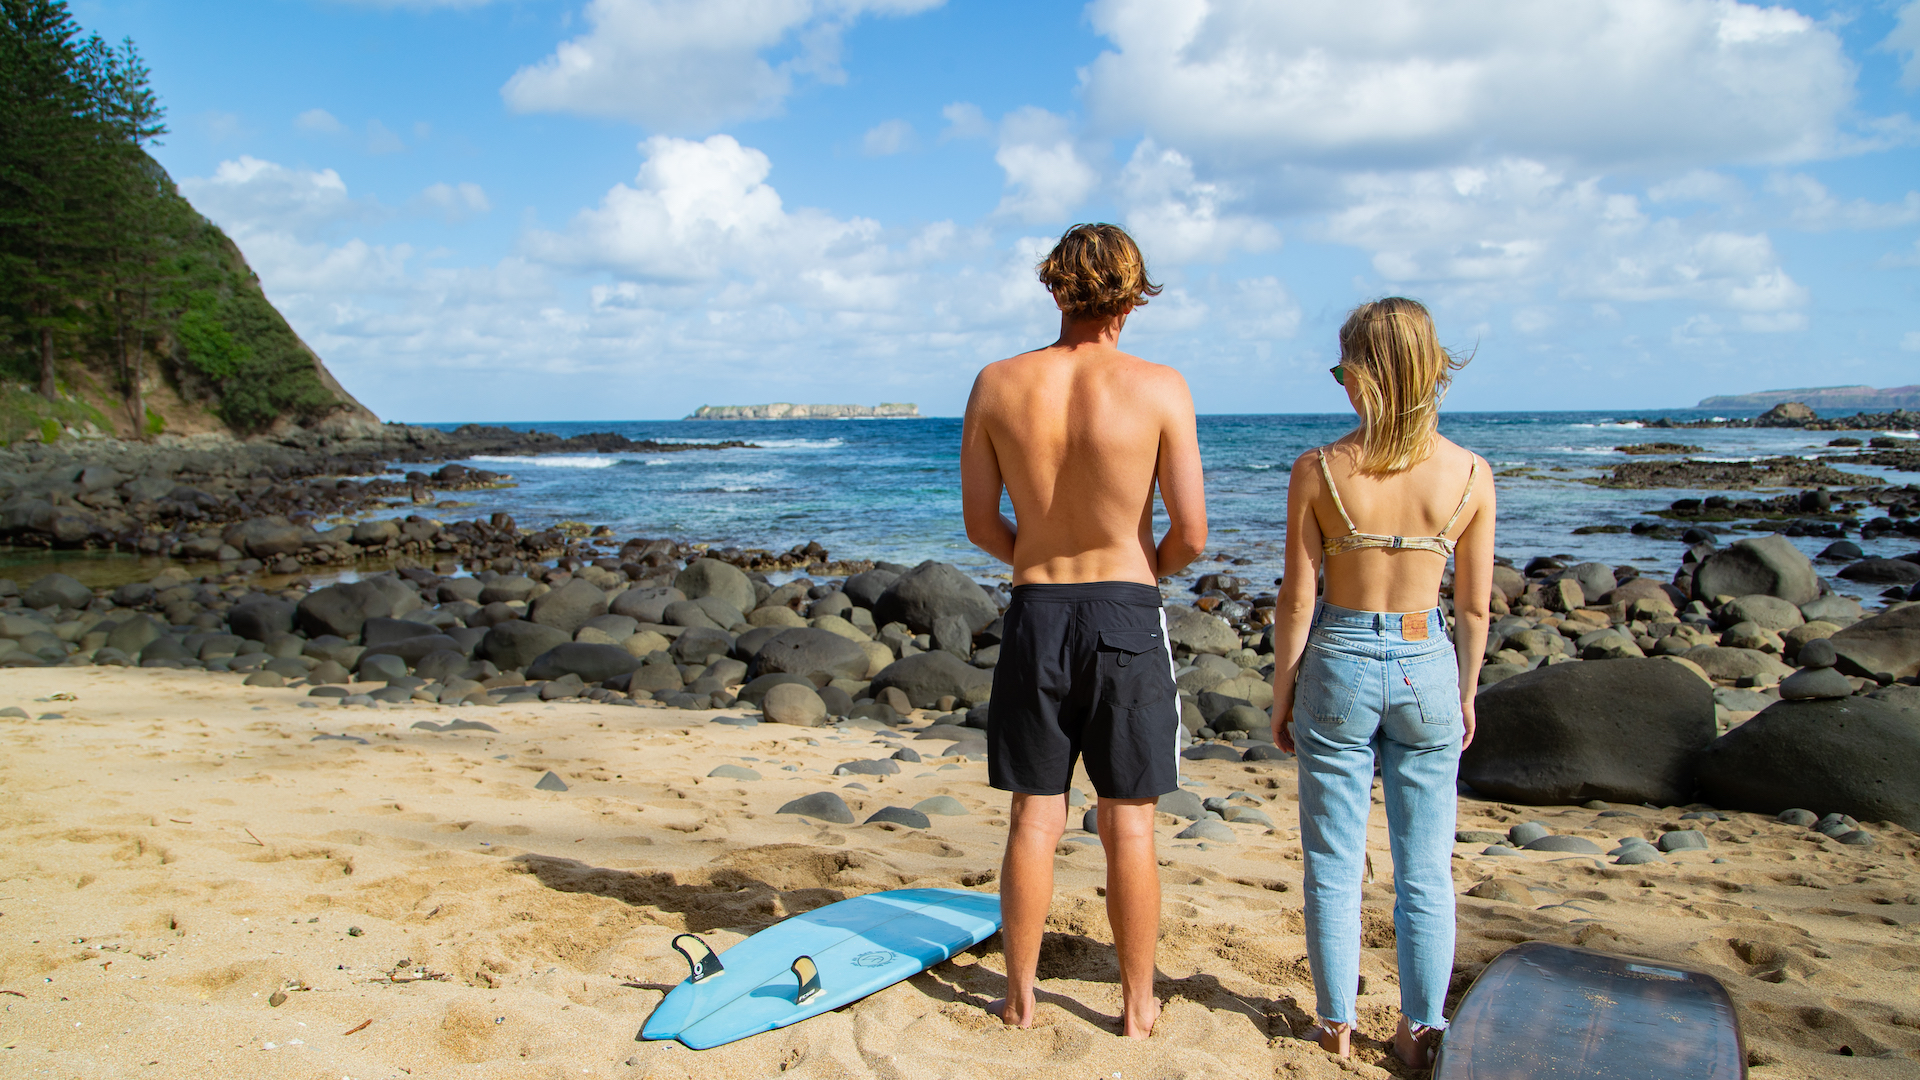 A young man and woman stand on the shore with their backs to the camera looking out over rocks to the sea. Surfboards on the sand beside them.